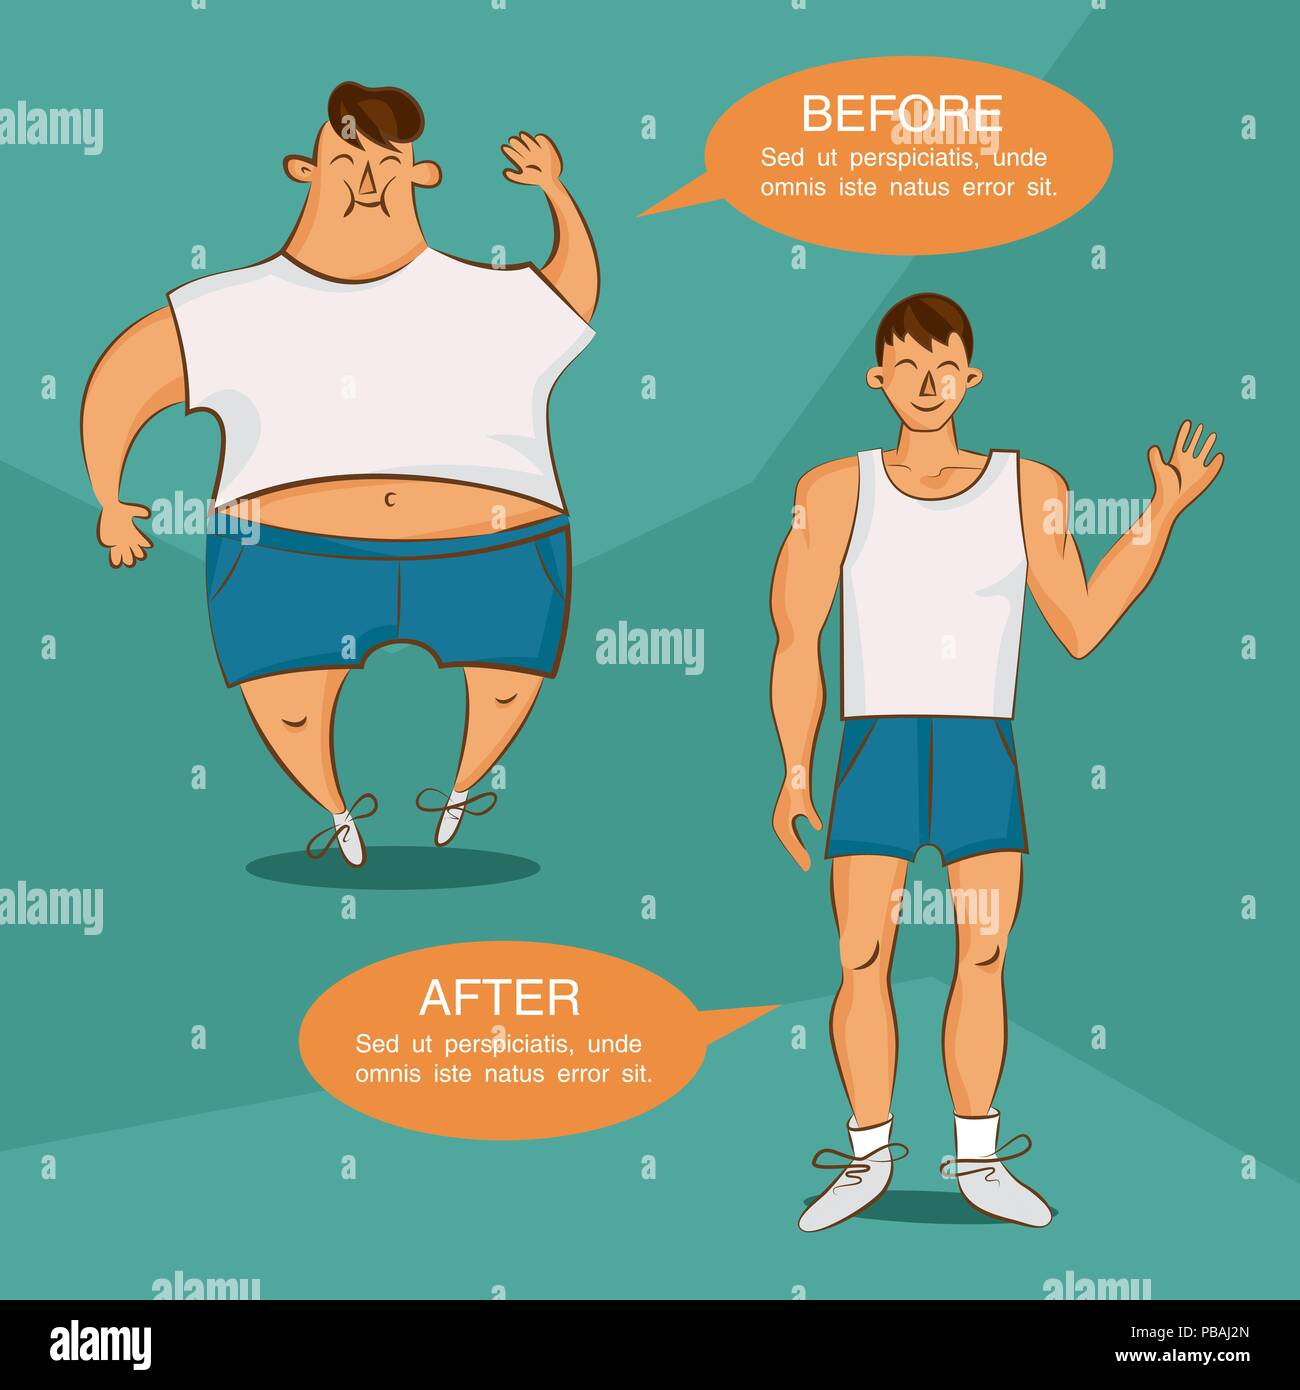 Before And After Losing Weight Illustration Overweight And Normal Cartoon Characters Image For Sport Diet Health Fat Lose And Other Articles Vec Stock Vector Image Art Alamy